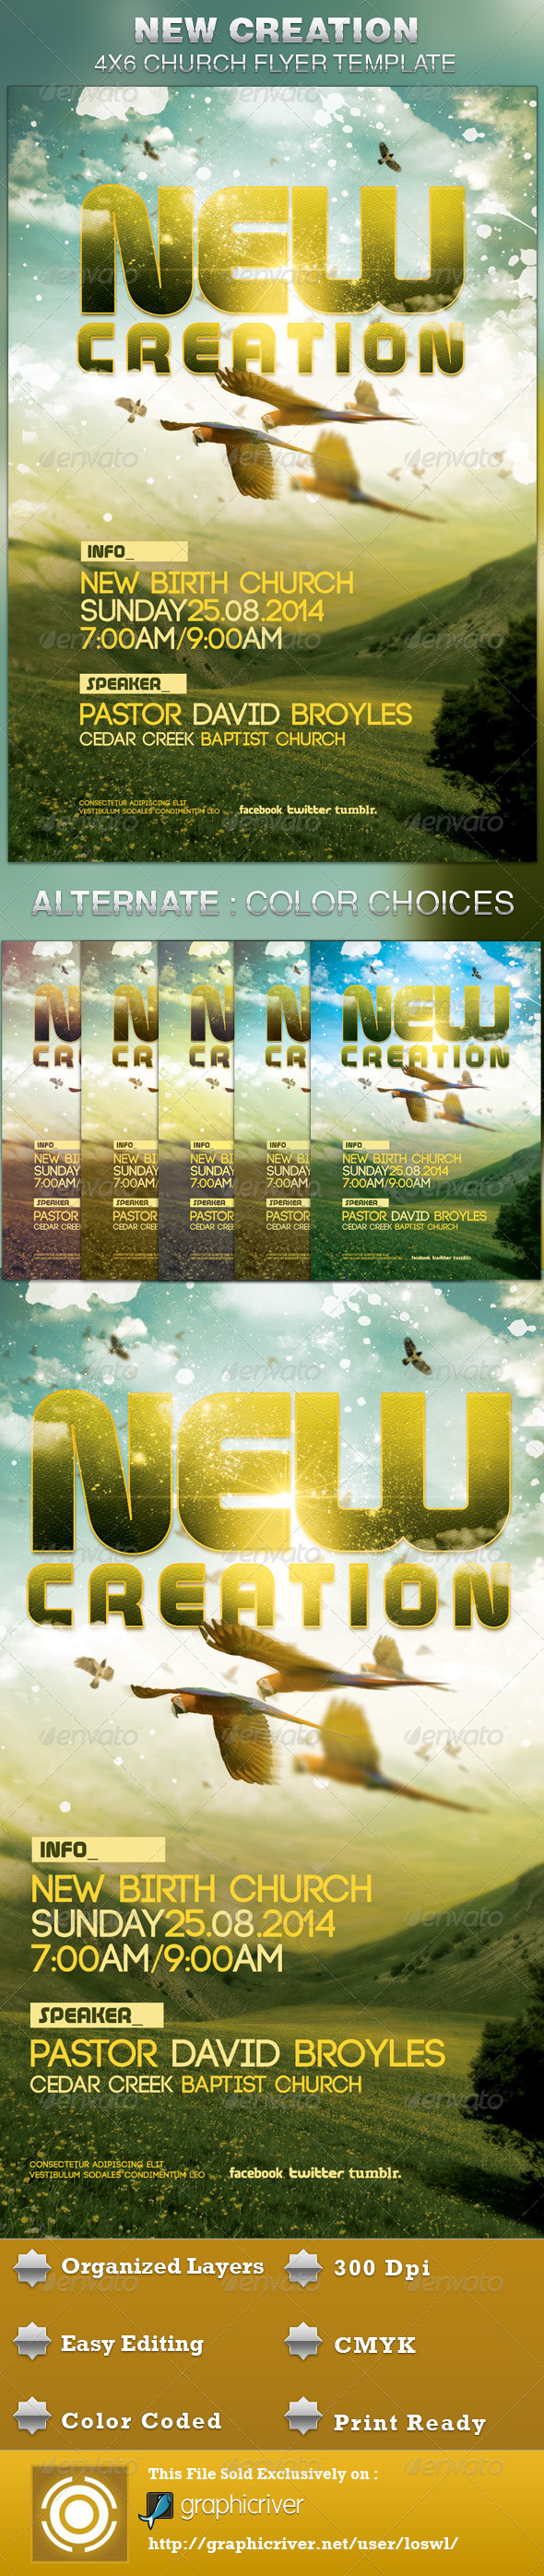 New Creation Church Flyer Template - Church Flyers